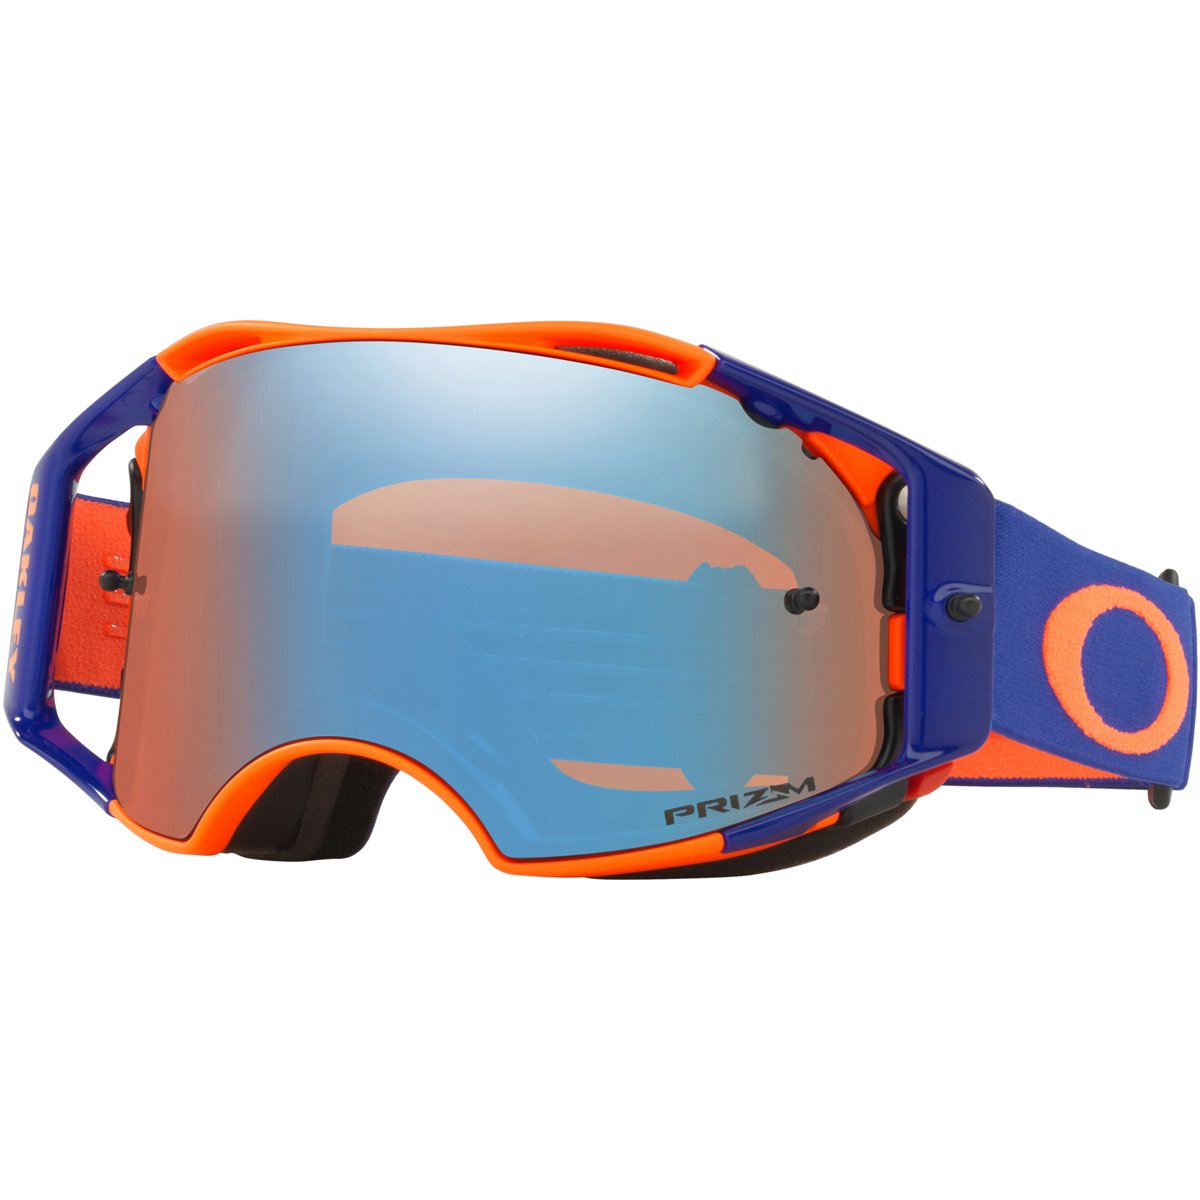 Oakley ABMX Orange Blue with Prizm MX Sapphire unisex-adult Goggles (Orange, Medium), 1 Pack